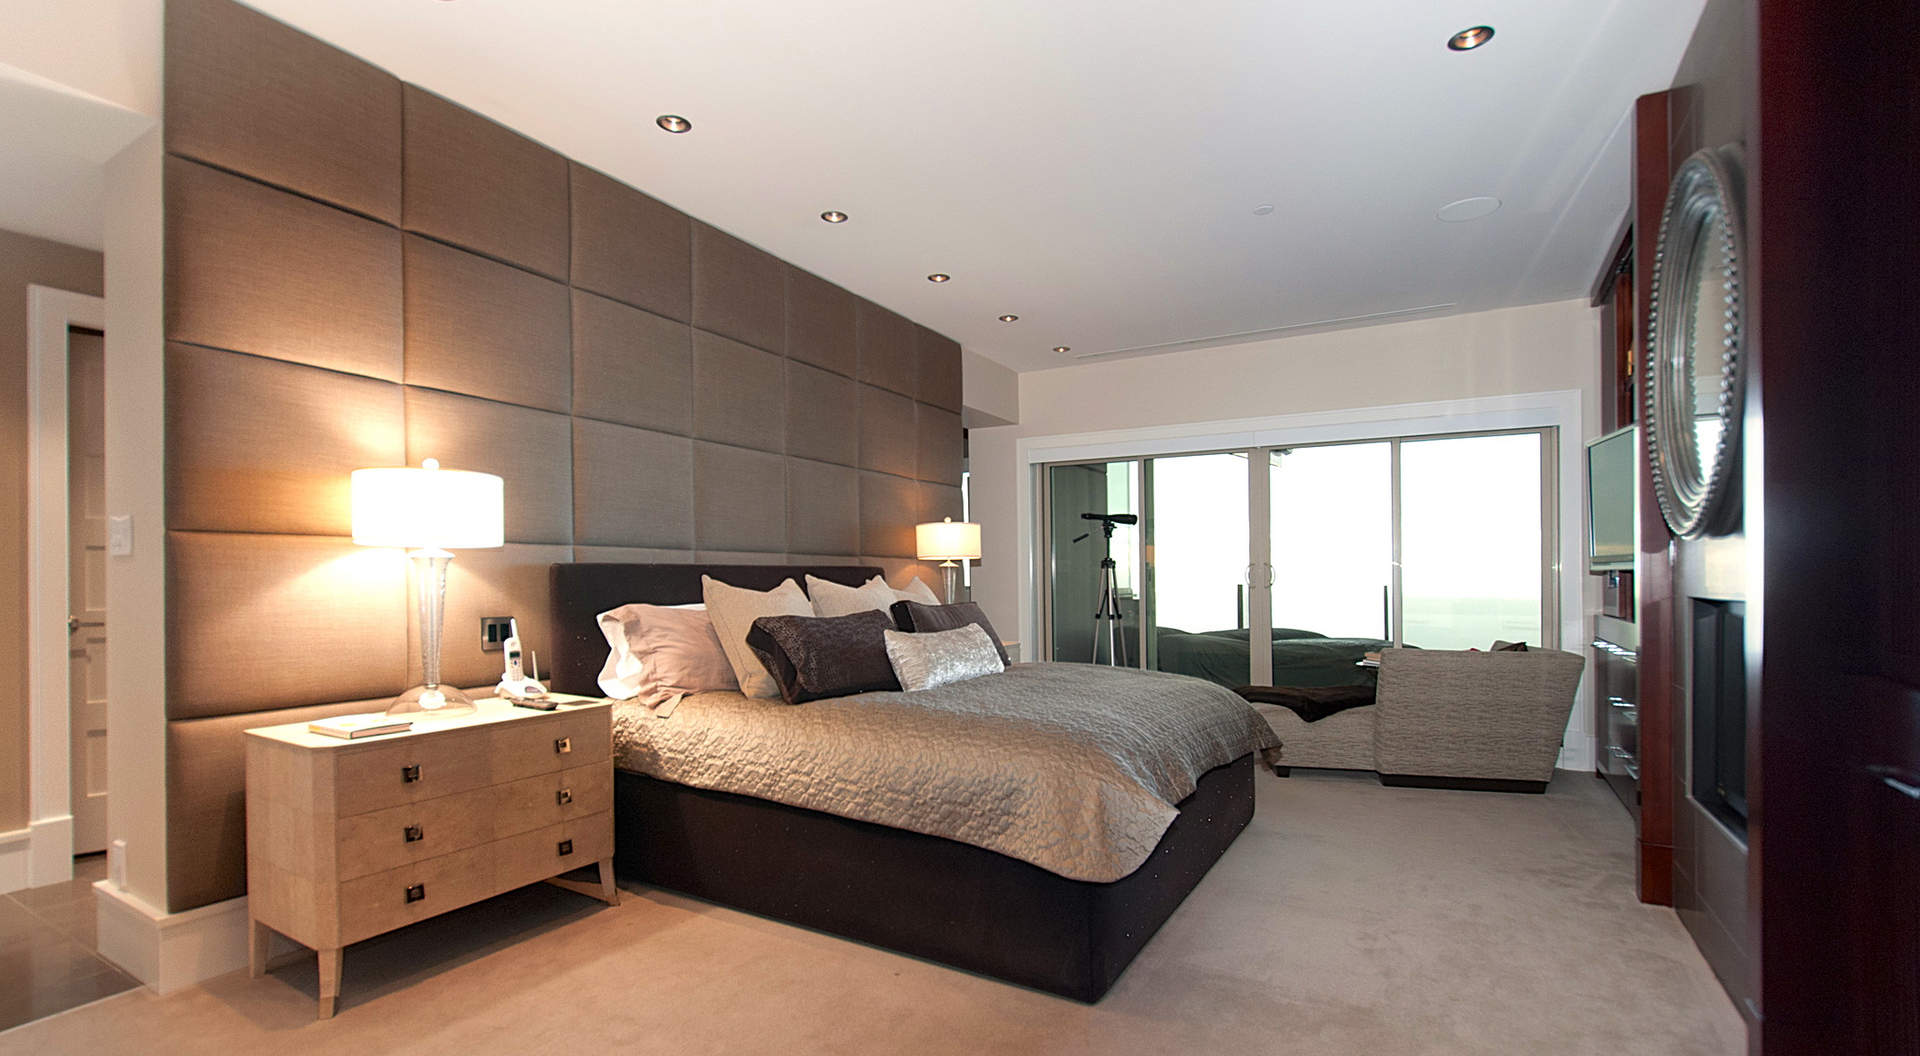 Penthouse master bedroom interior design ideas for Master bedroom interior